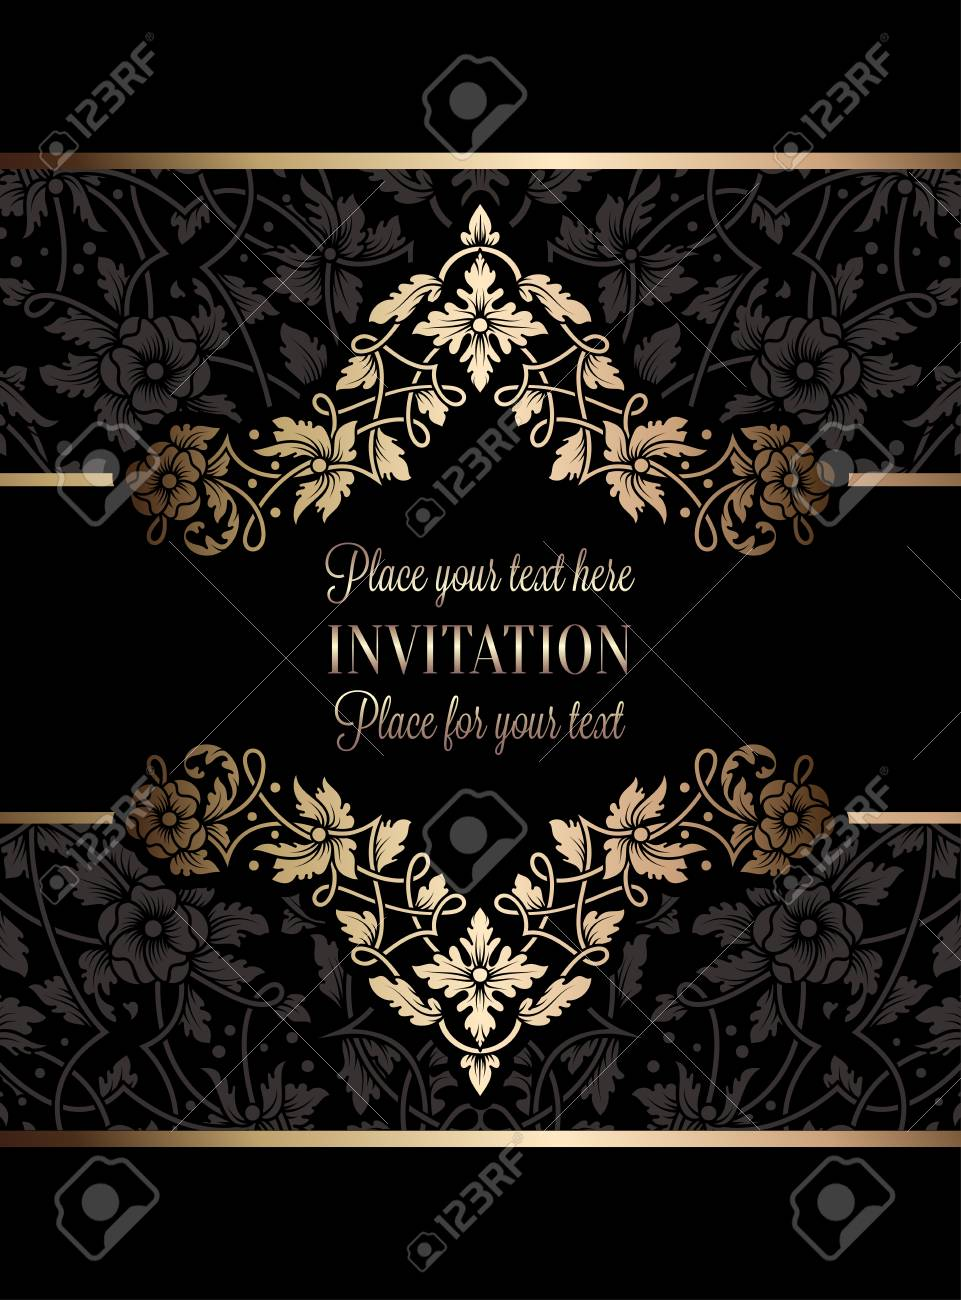 Floral Invitation Card Or Background With Antique, Luxury Black.. Royalty  Free Cliparts, Vectors, And Stock Illustration. Image 79316298.